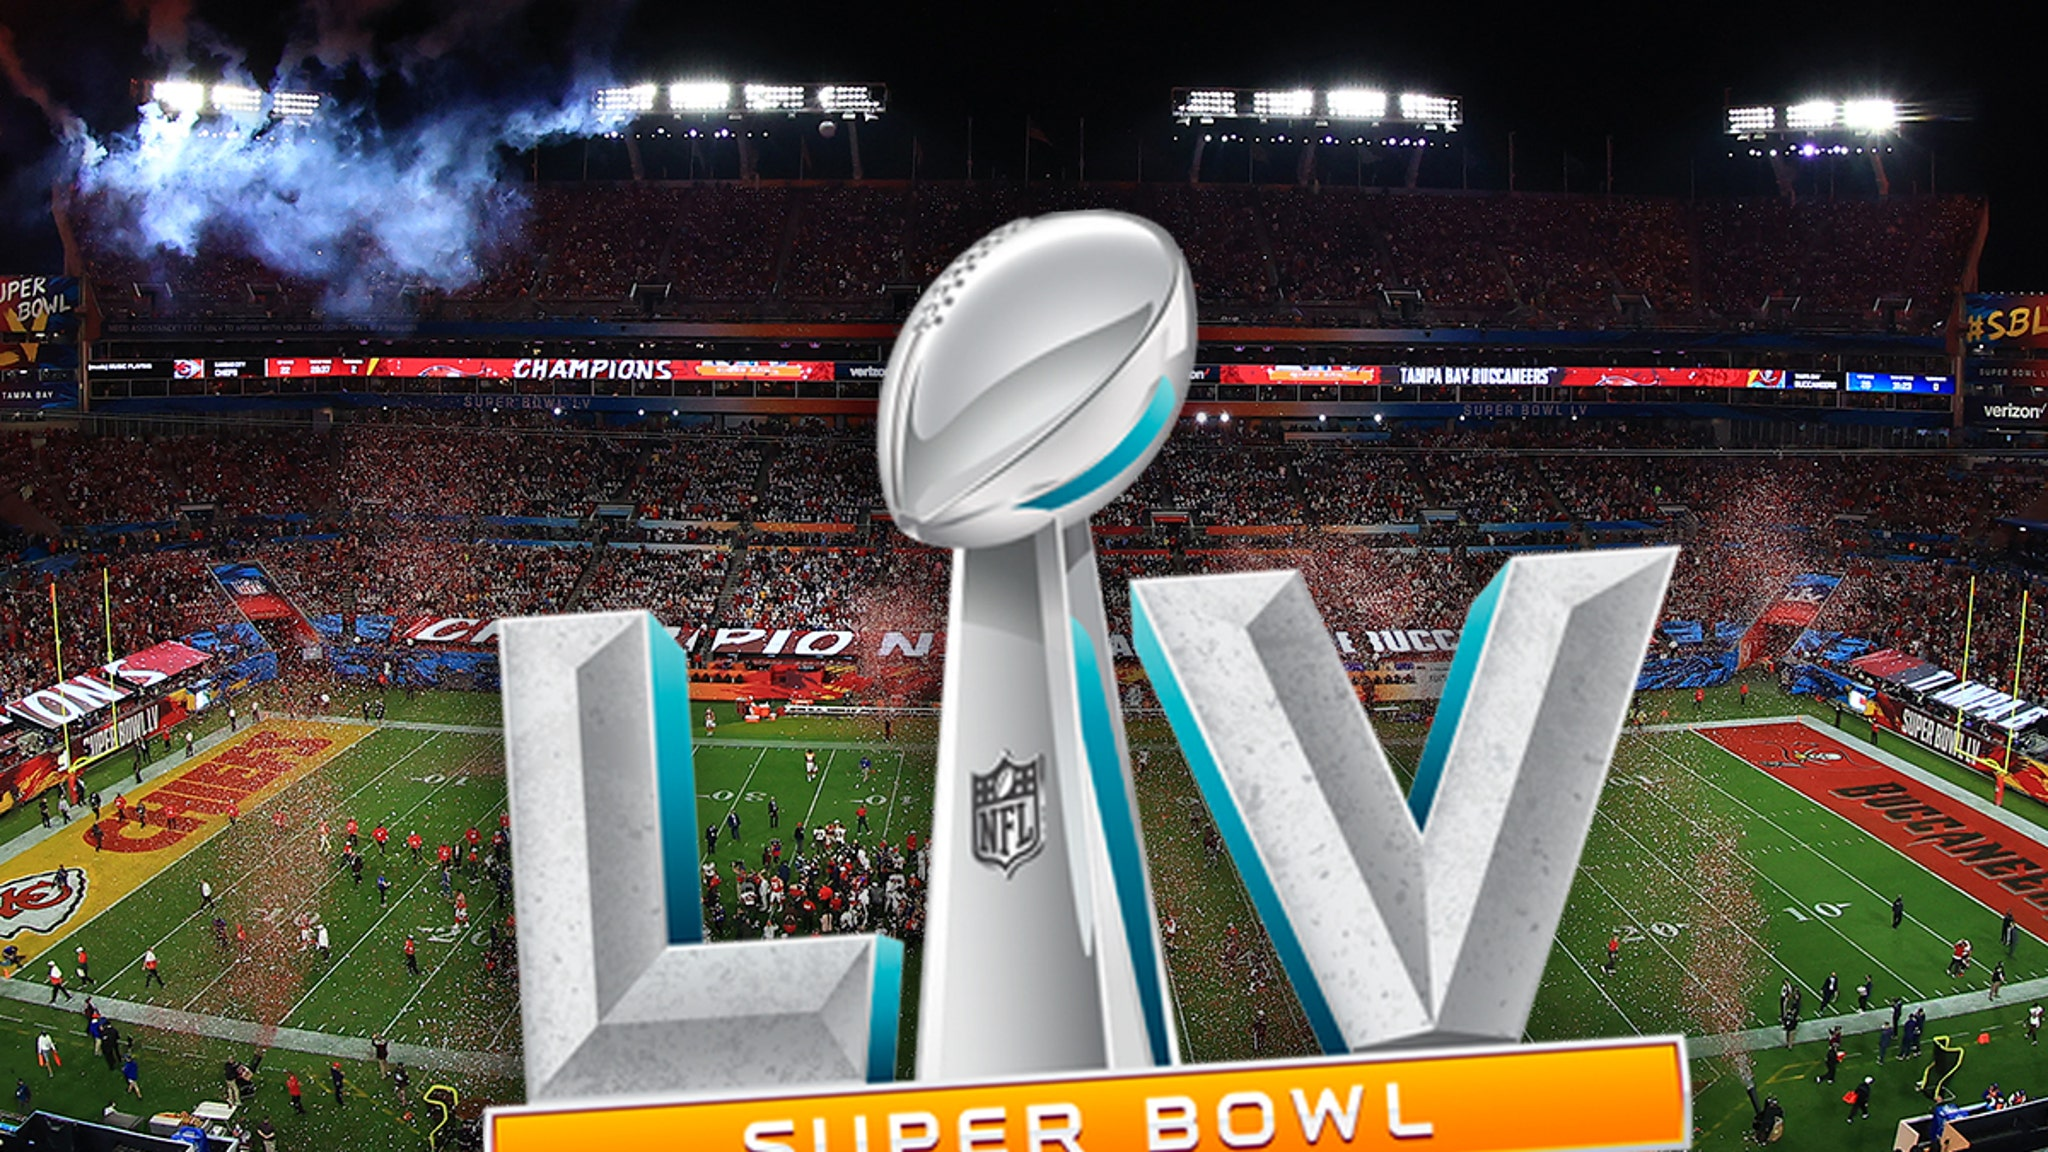 Super Bowl LV Was Not A COVID-19 Super-Spreader, Officials Say - TMZ